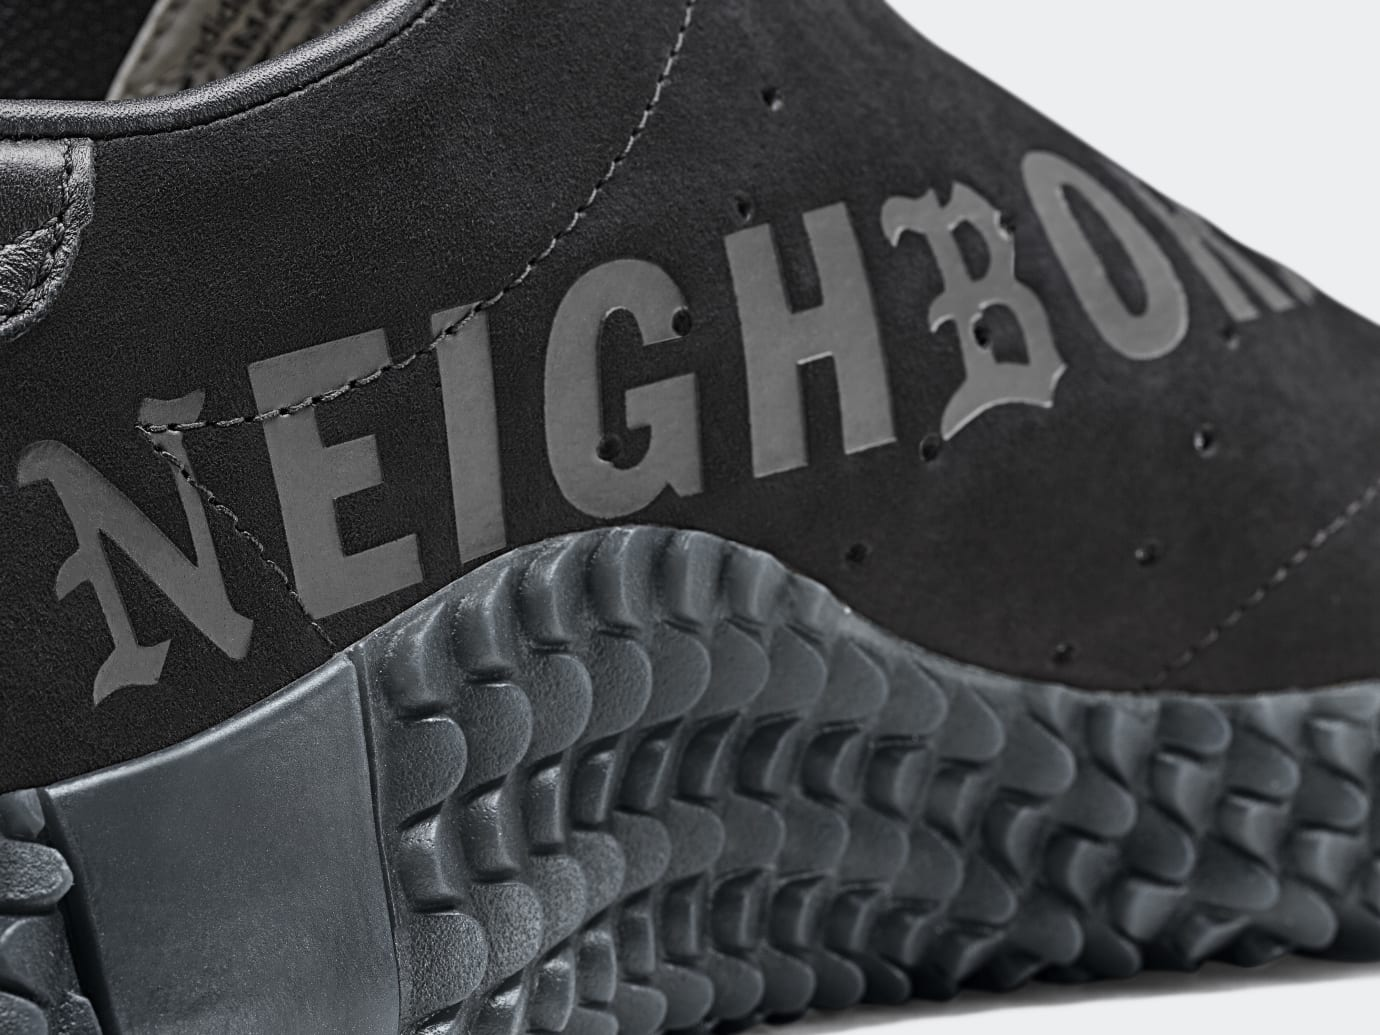 Neighborhood x Adidas Kamanda B37341 (Detail)